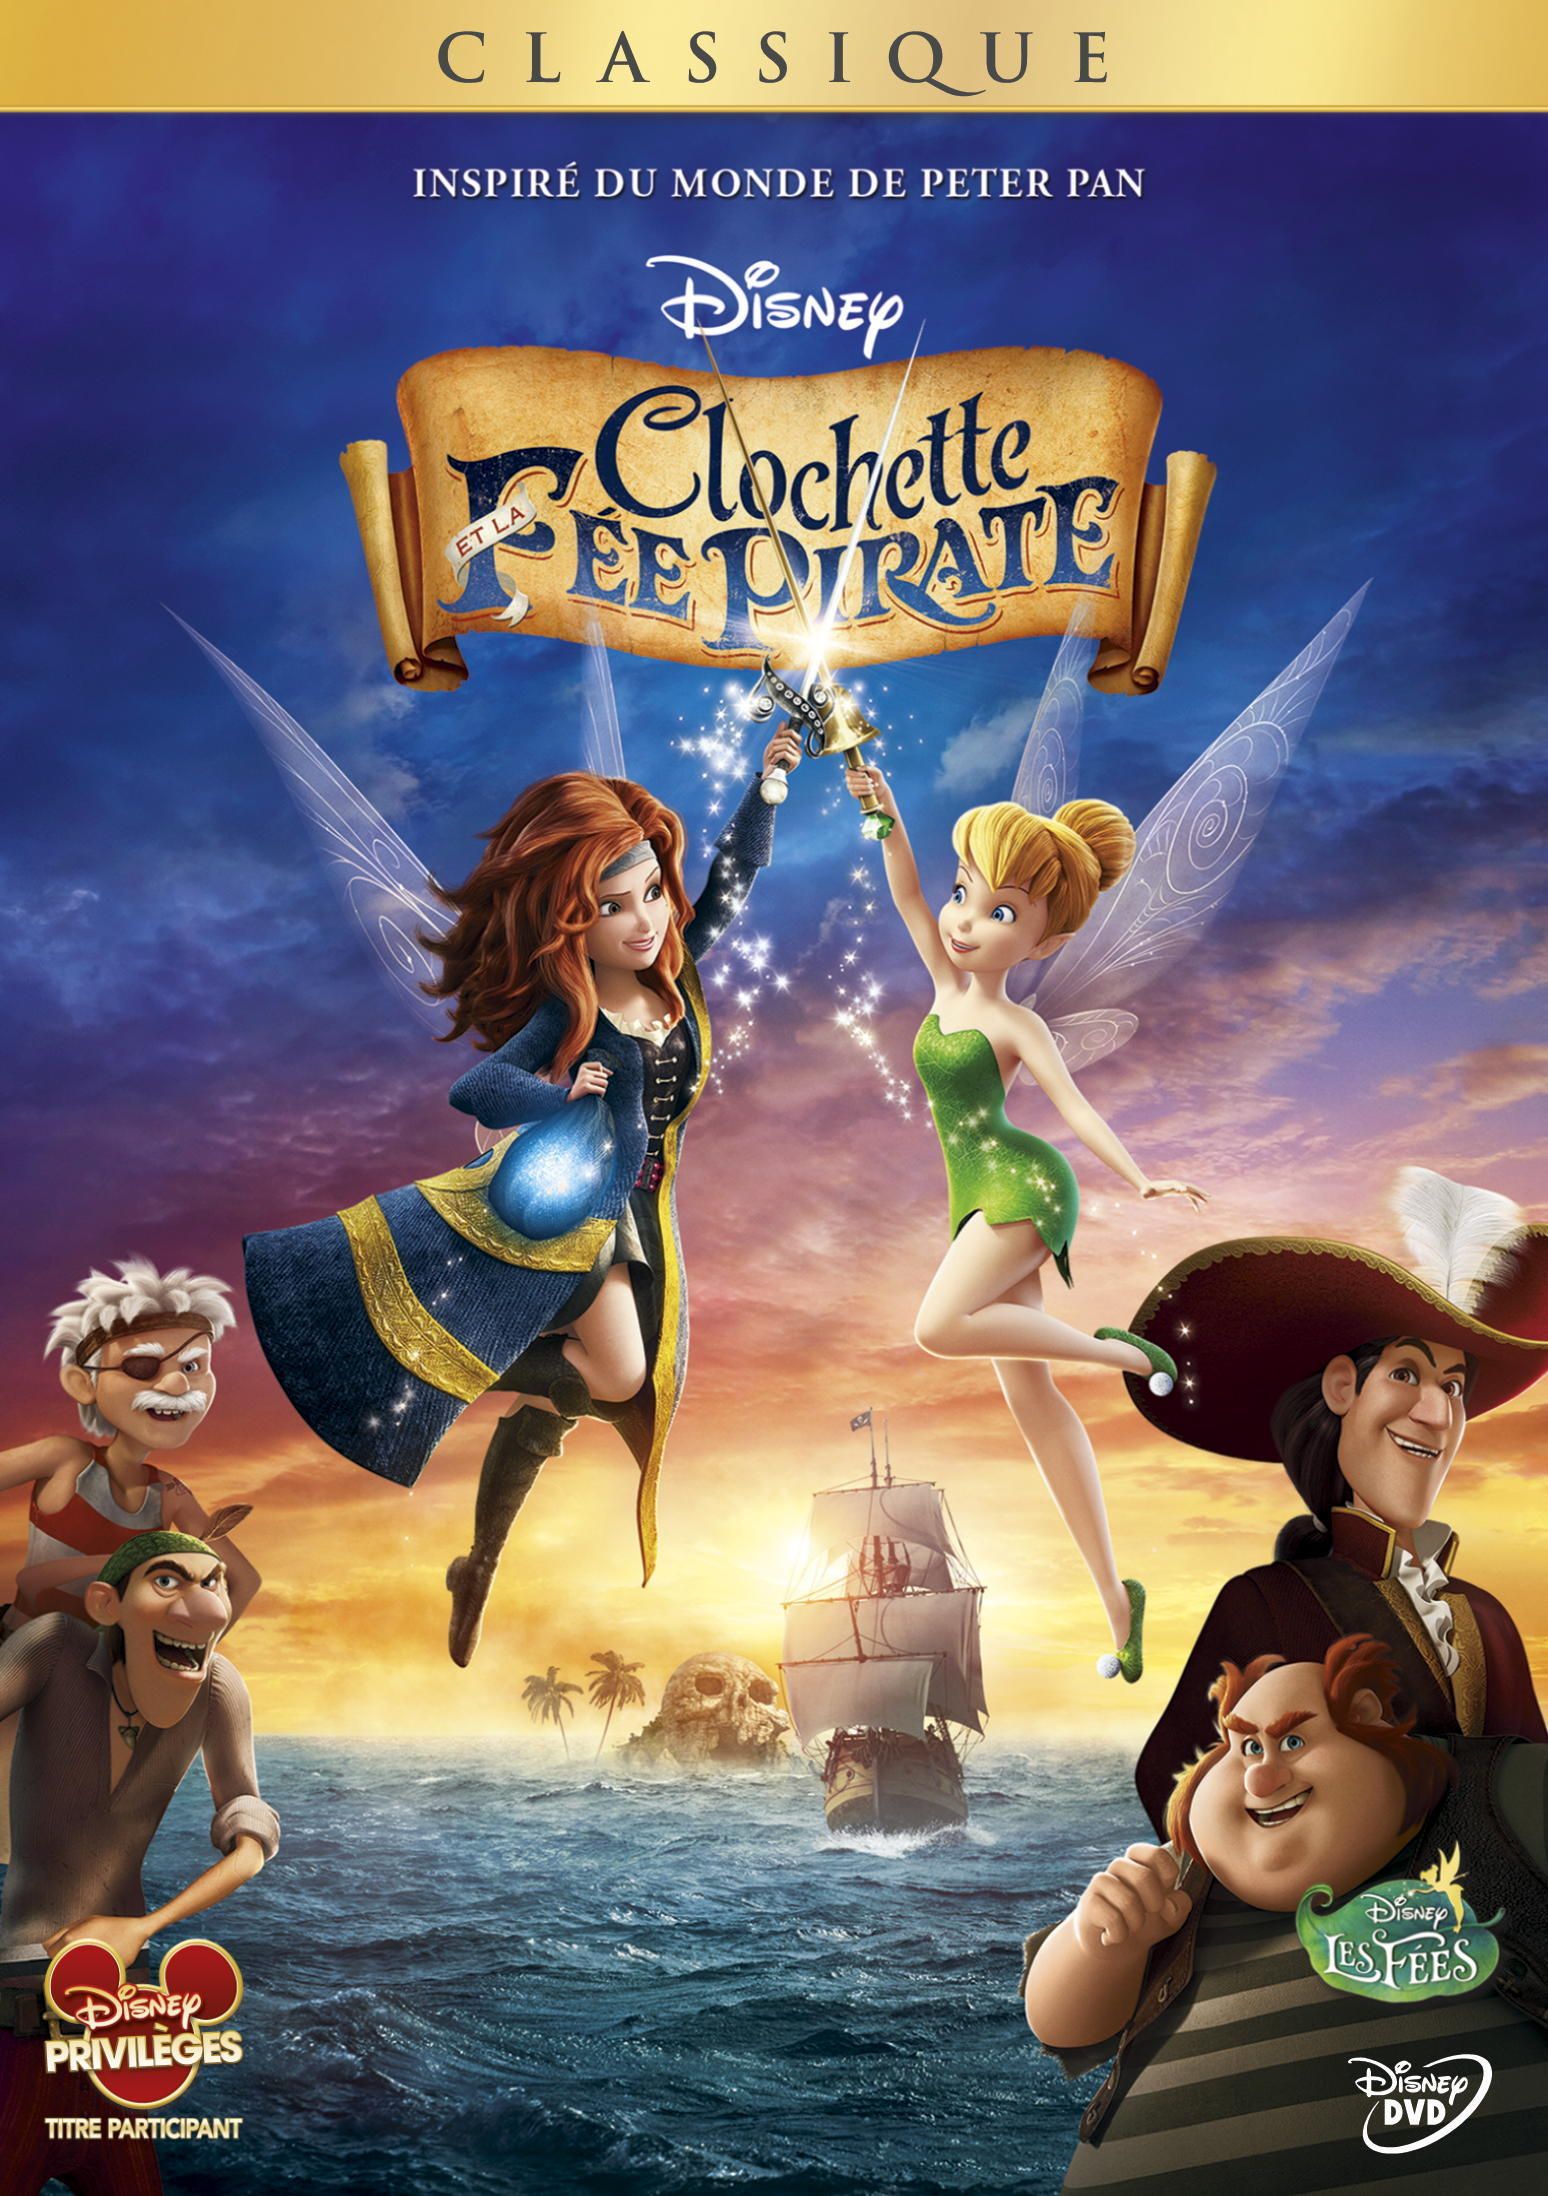 DVD Clochette et la Fée Pirate